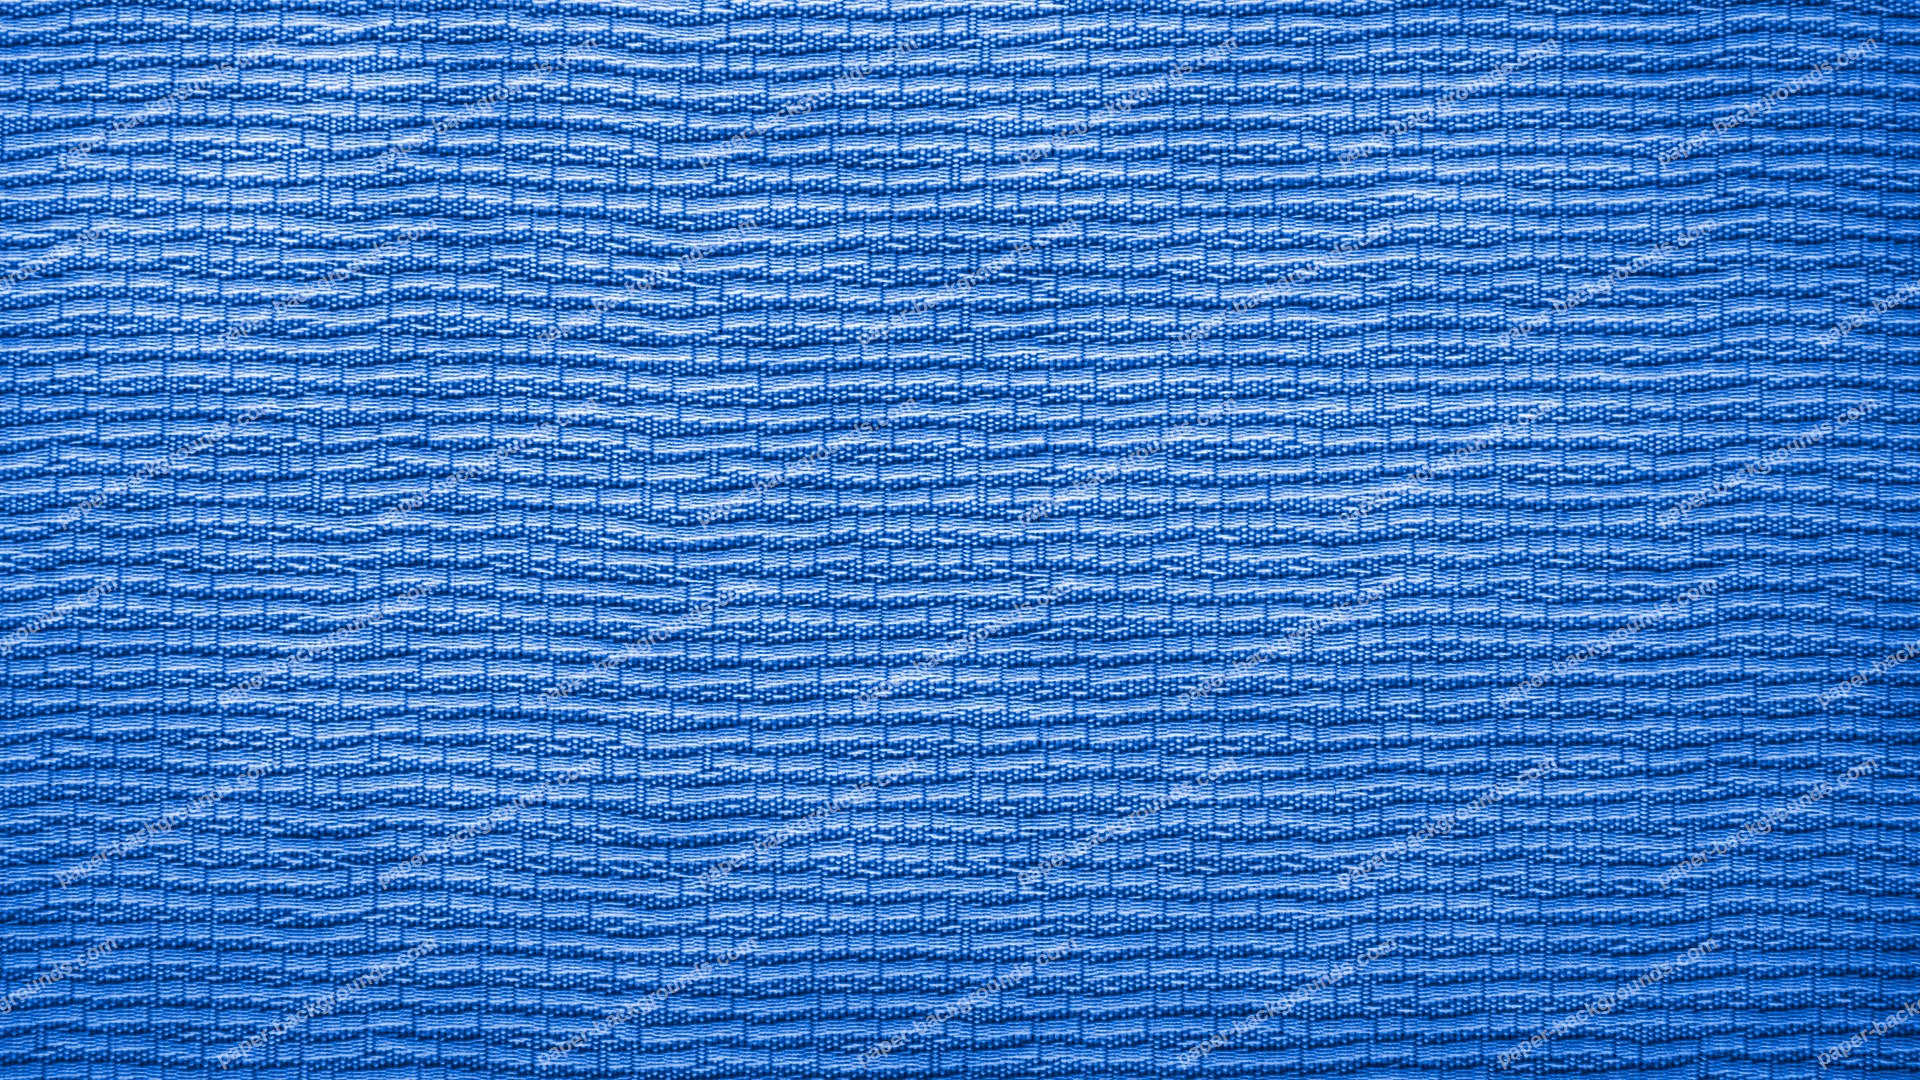 Blue Textured Canvas Background HD 1920 x 1080p